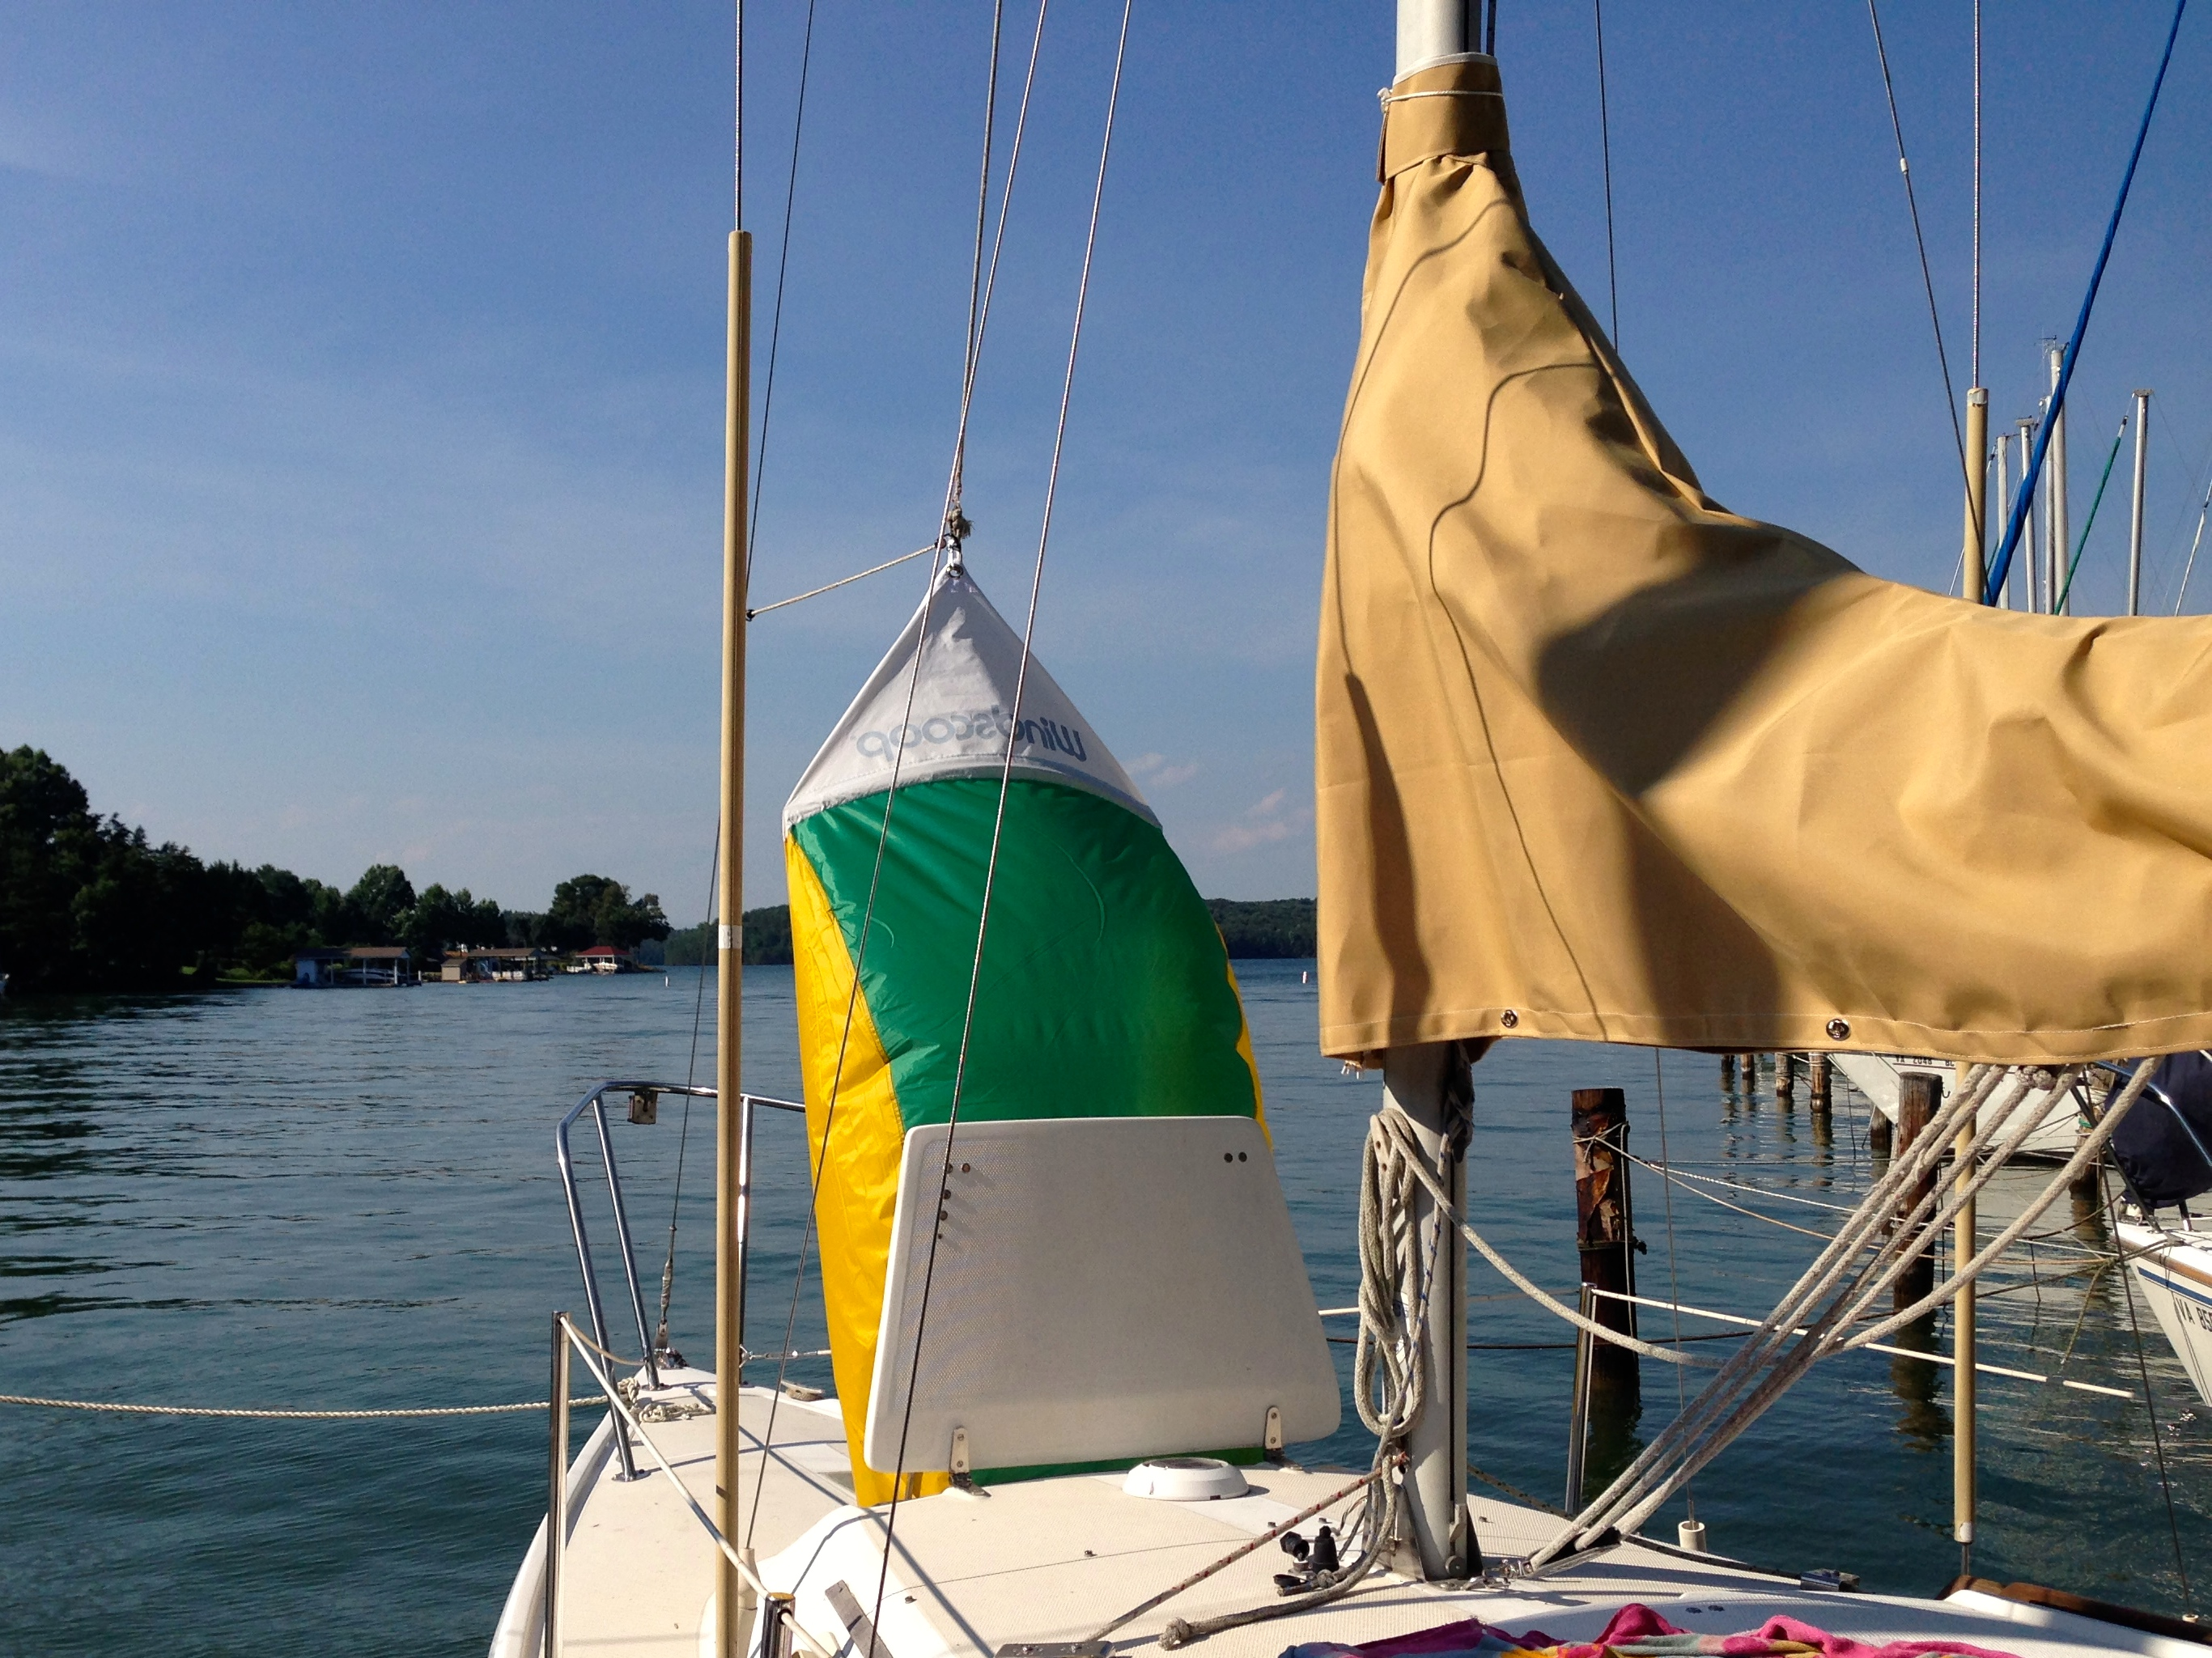 Catalina 25 Review Which Sailboat 27 Wiring Diagram A With Windscoop Mounted In V Berth Hatch